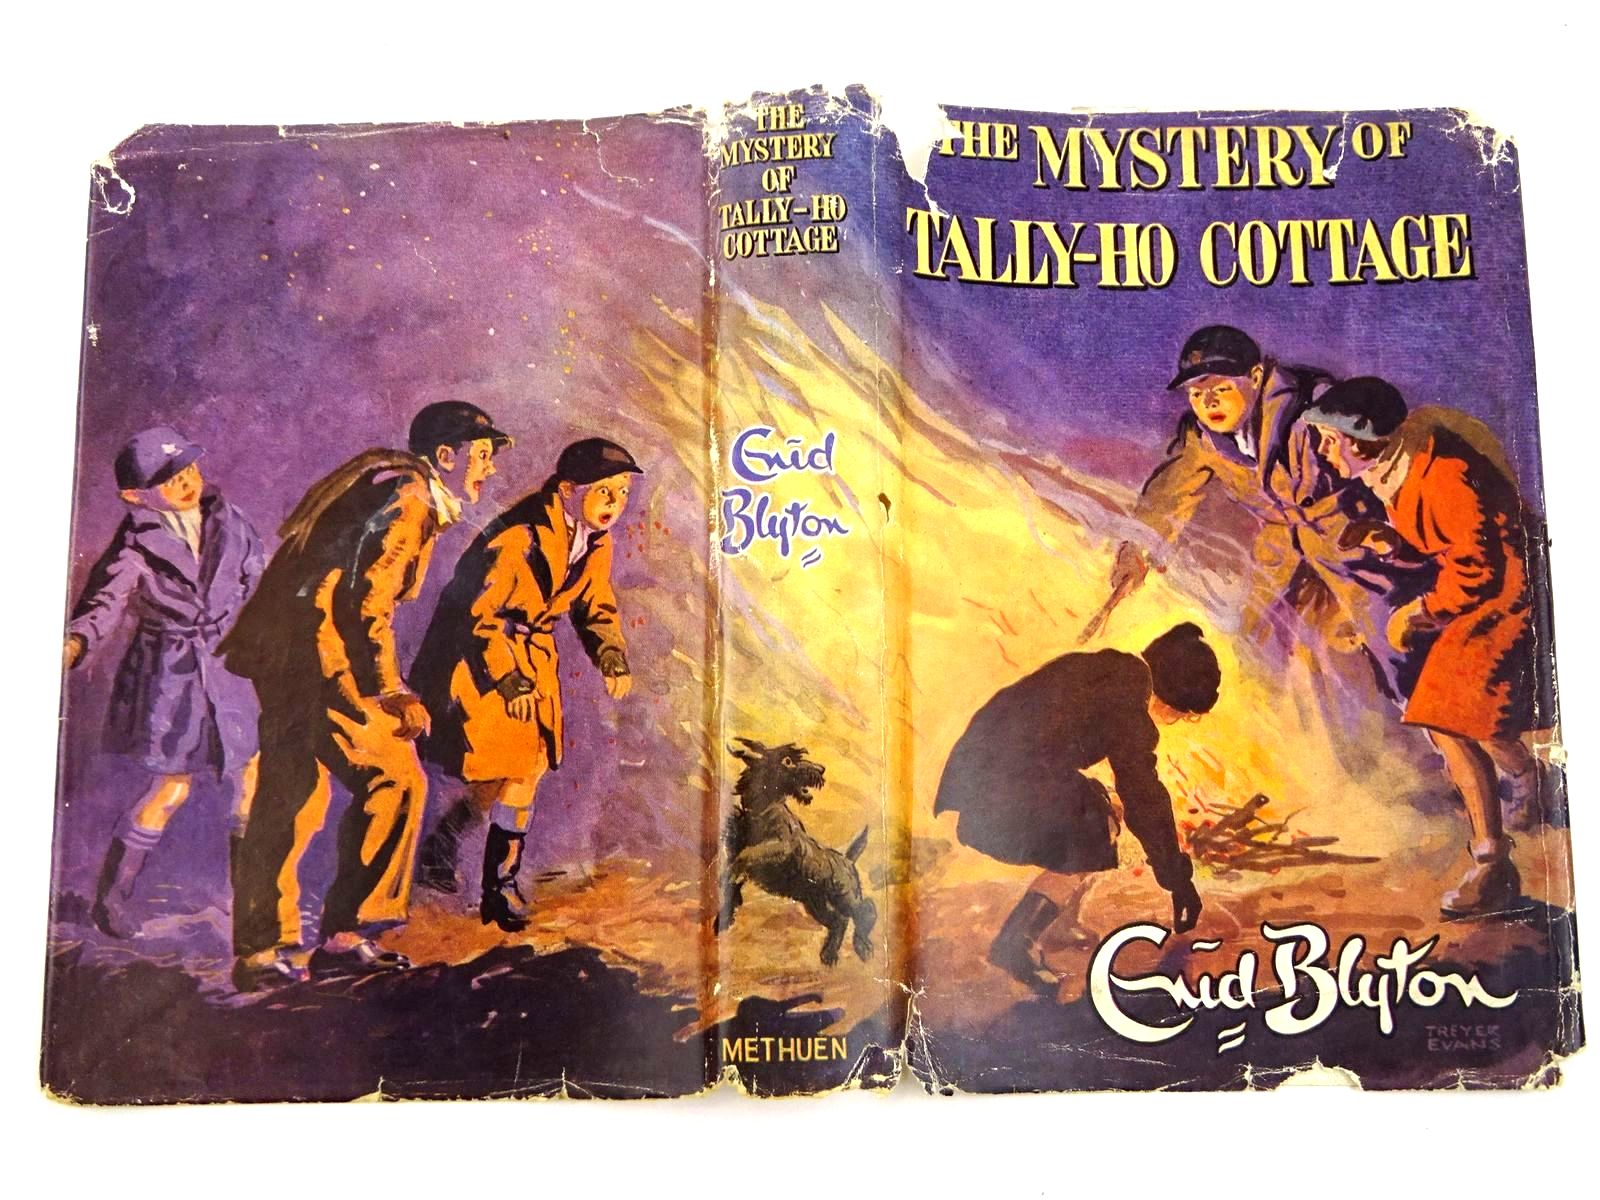 Photo of THE MYSTERY OF TALLY-HO COTTAGE written by Blyton, Enid illustrated by Evans, Treyer published by Methuen & Co. Ltd. (STOCK CODE: 1318340)  for sale by Stella & Rose's Books